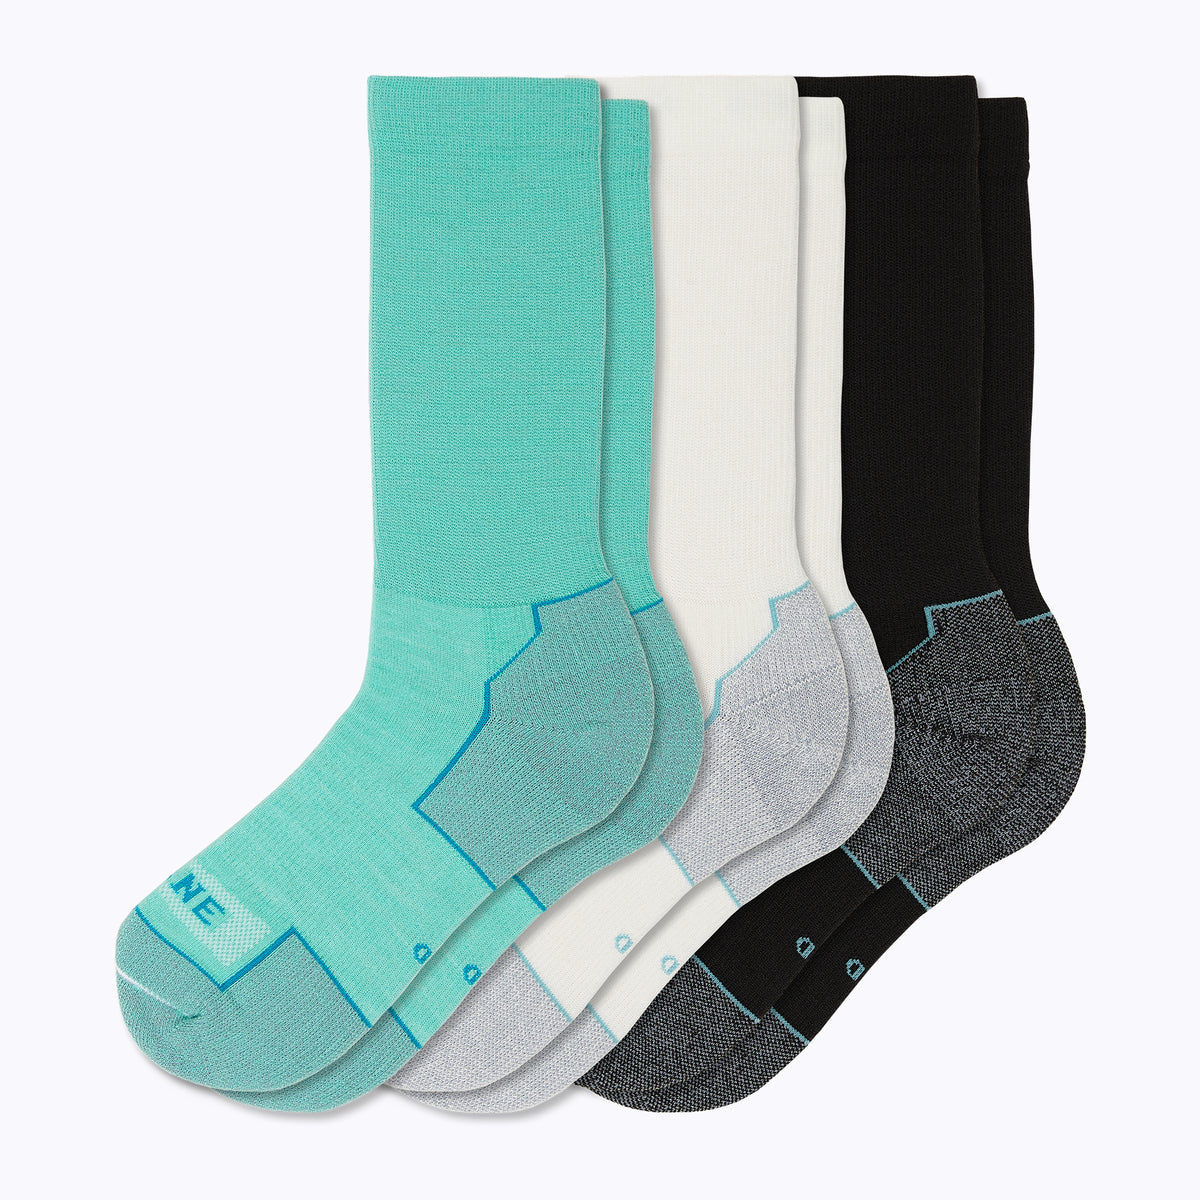 Everyday 3 Pack Mix Women's Mid-Calf Socks - Mix by Canyon x Lane Socks